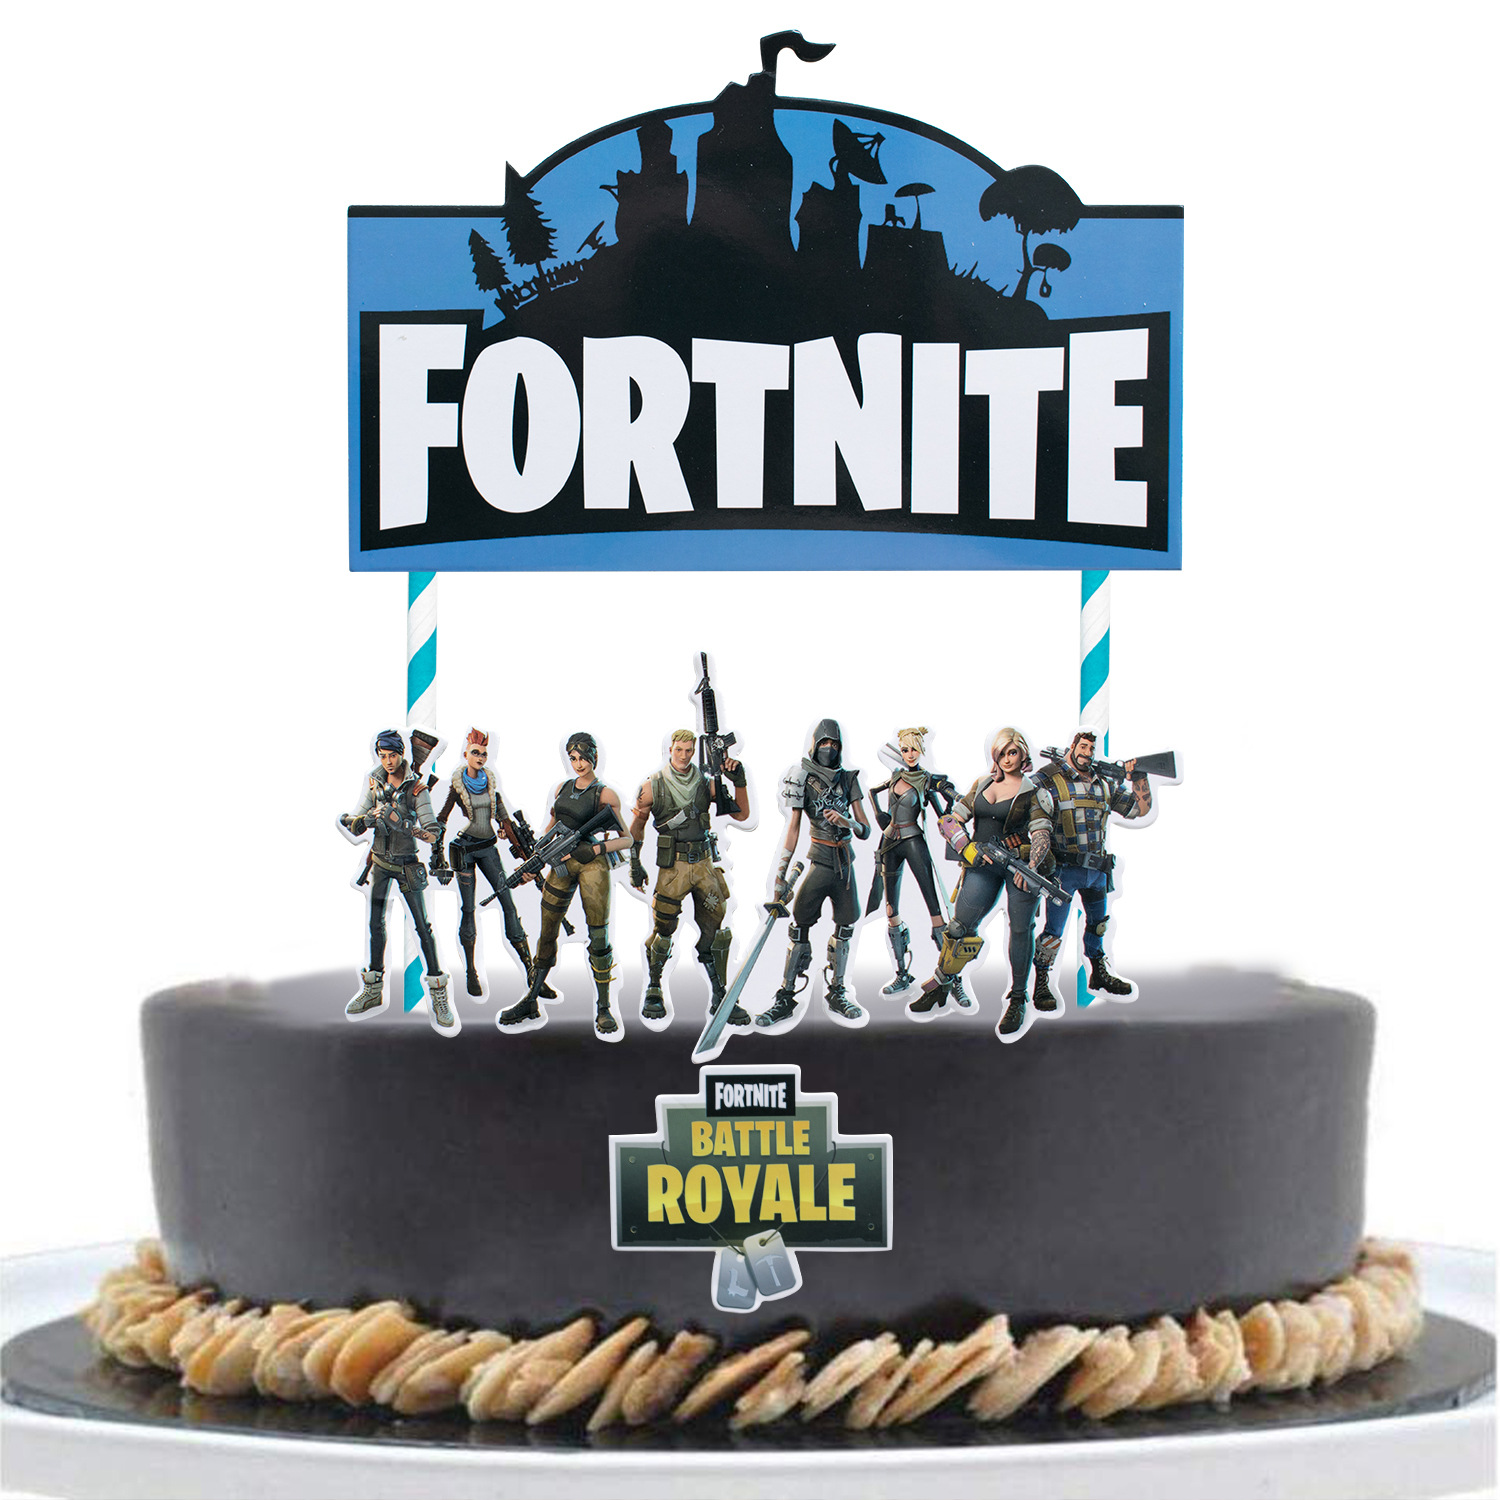 Fortnite Game Fortnite Cake Inserting Card Children Birthday Party Cake Decoration Decorative Flag Game Related Products